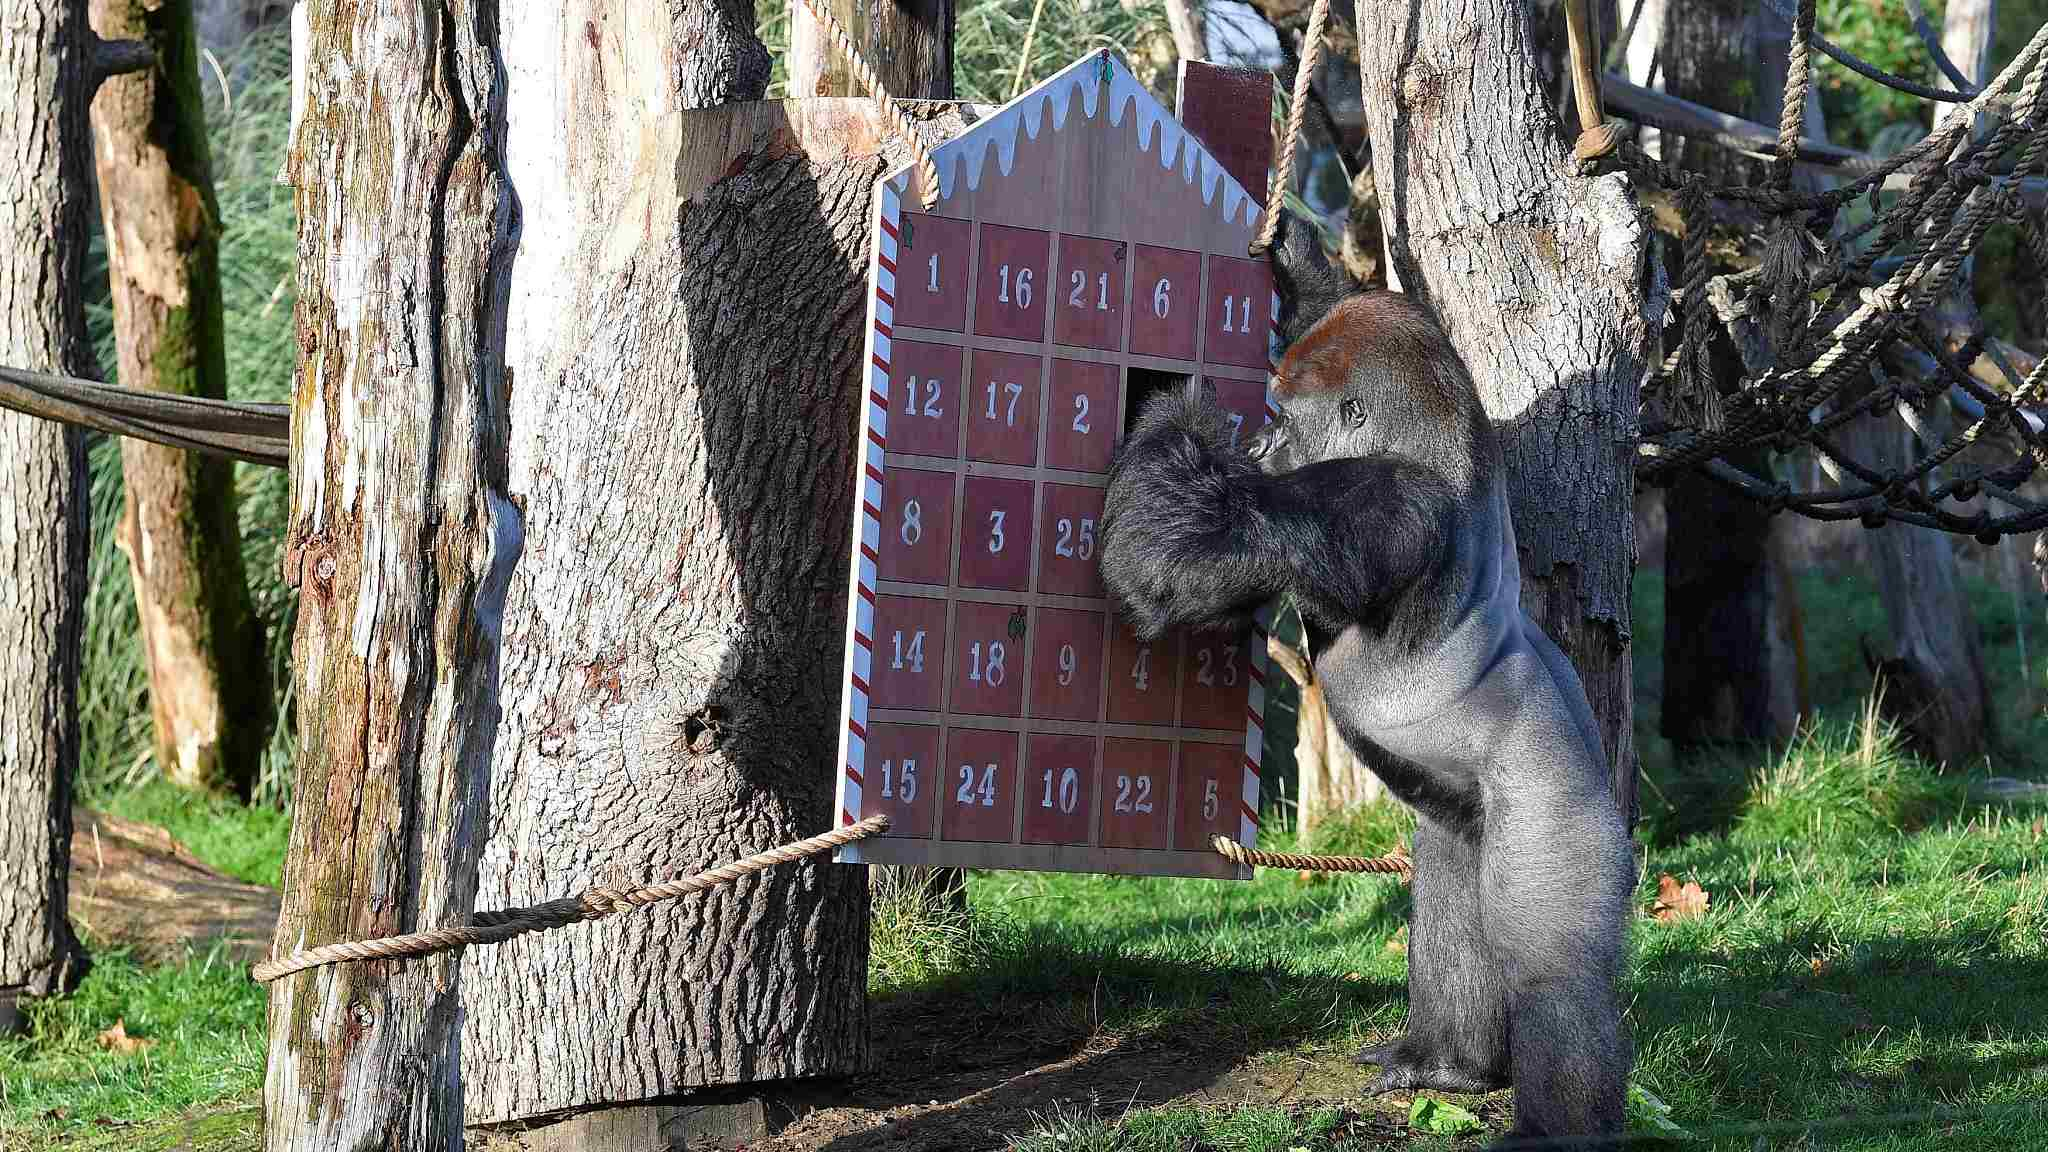 What's in my Christmas stocking? Animals surprised with holiday treats at London zoo